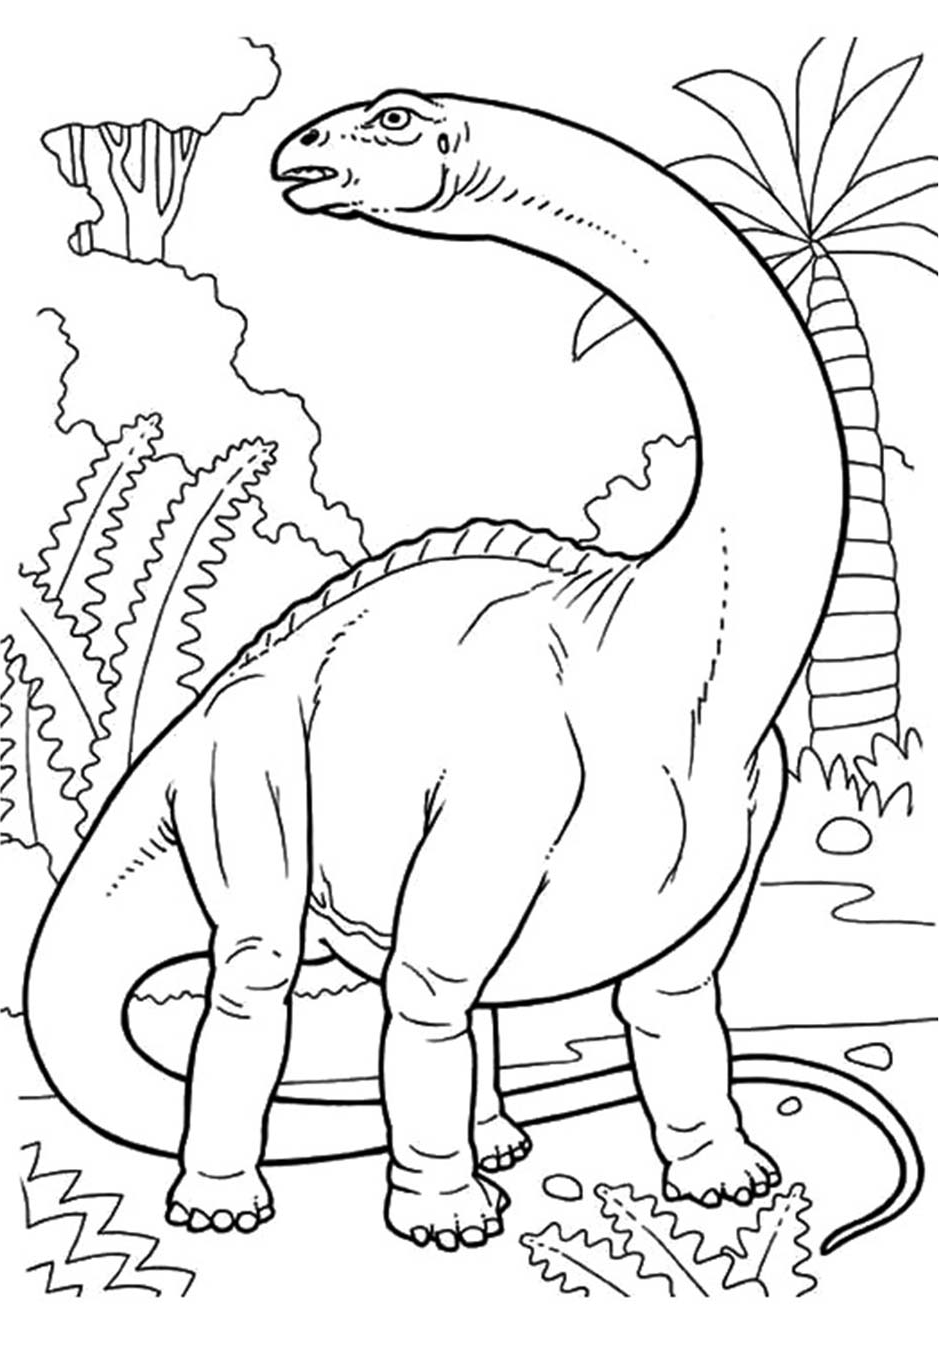 dinosaur colouring pictures to print 10 free printable dinosaur coloring pages 1nza print pictures dinosaur to colouring